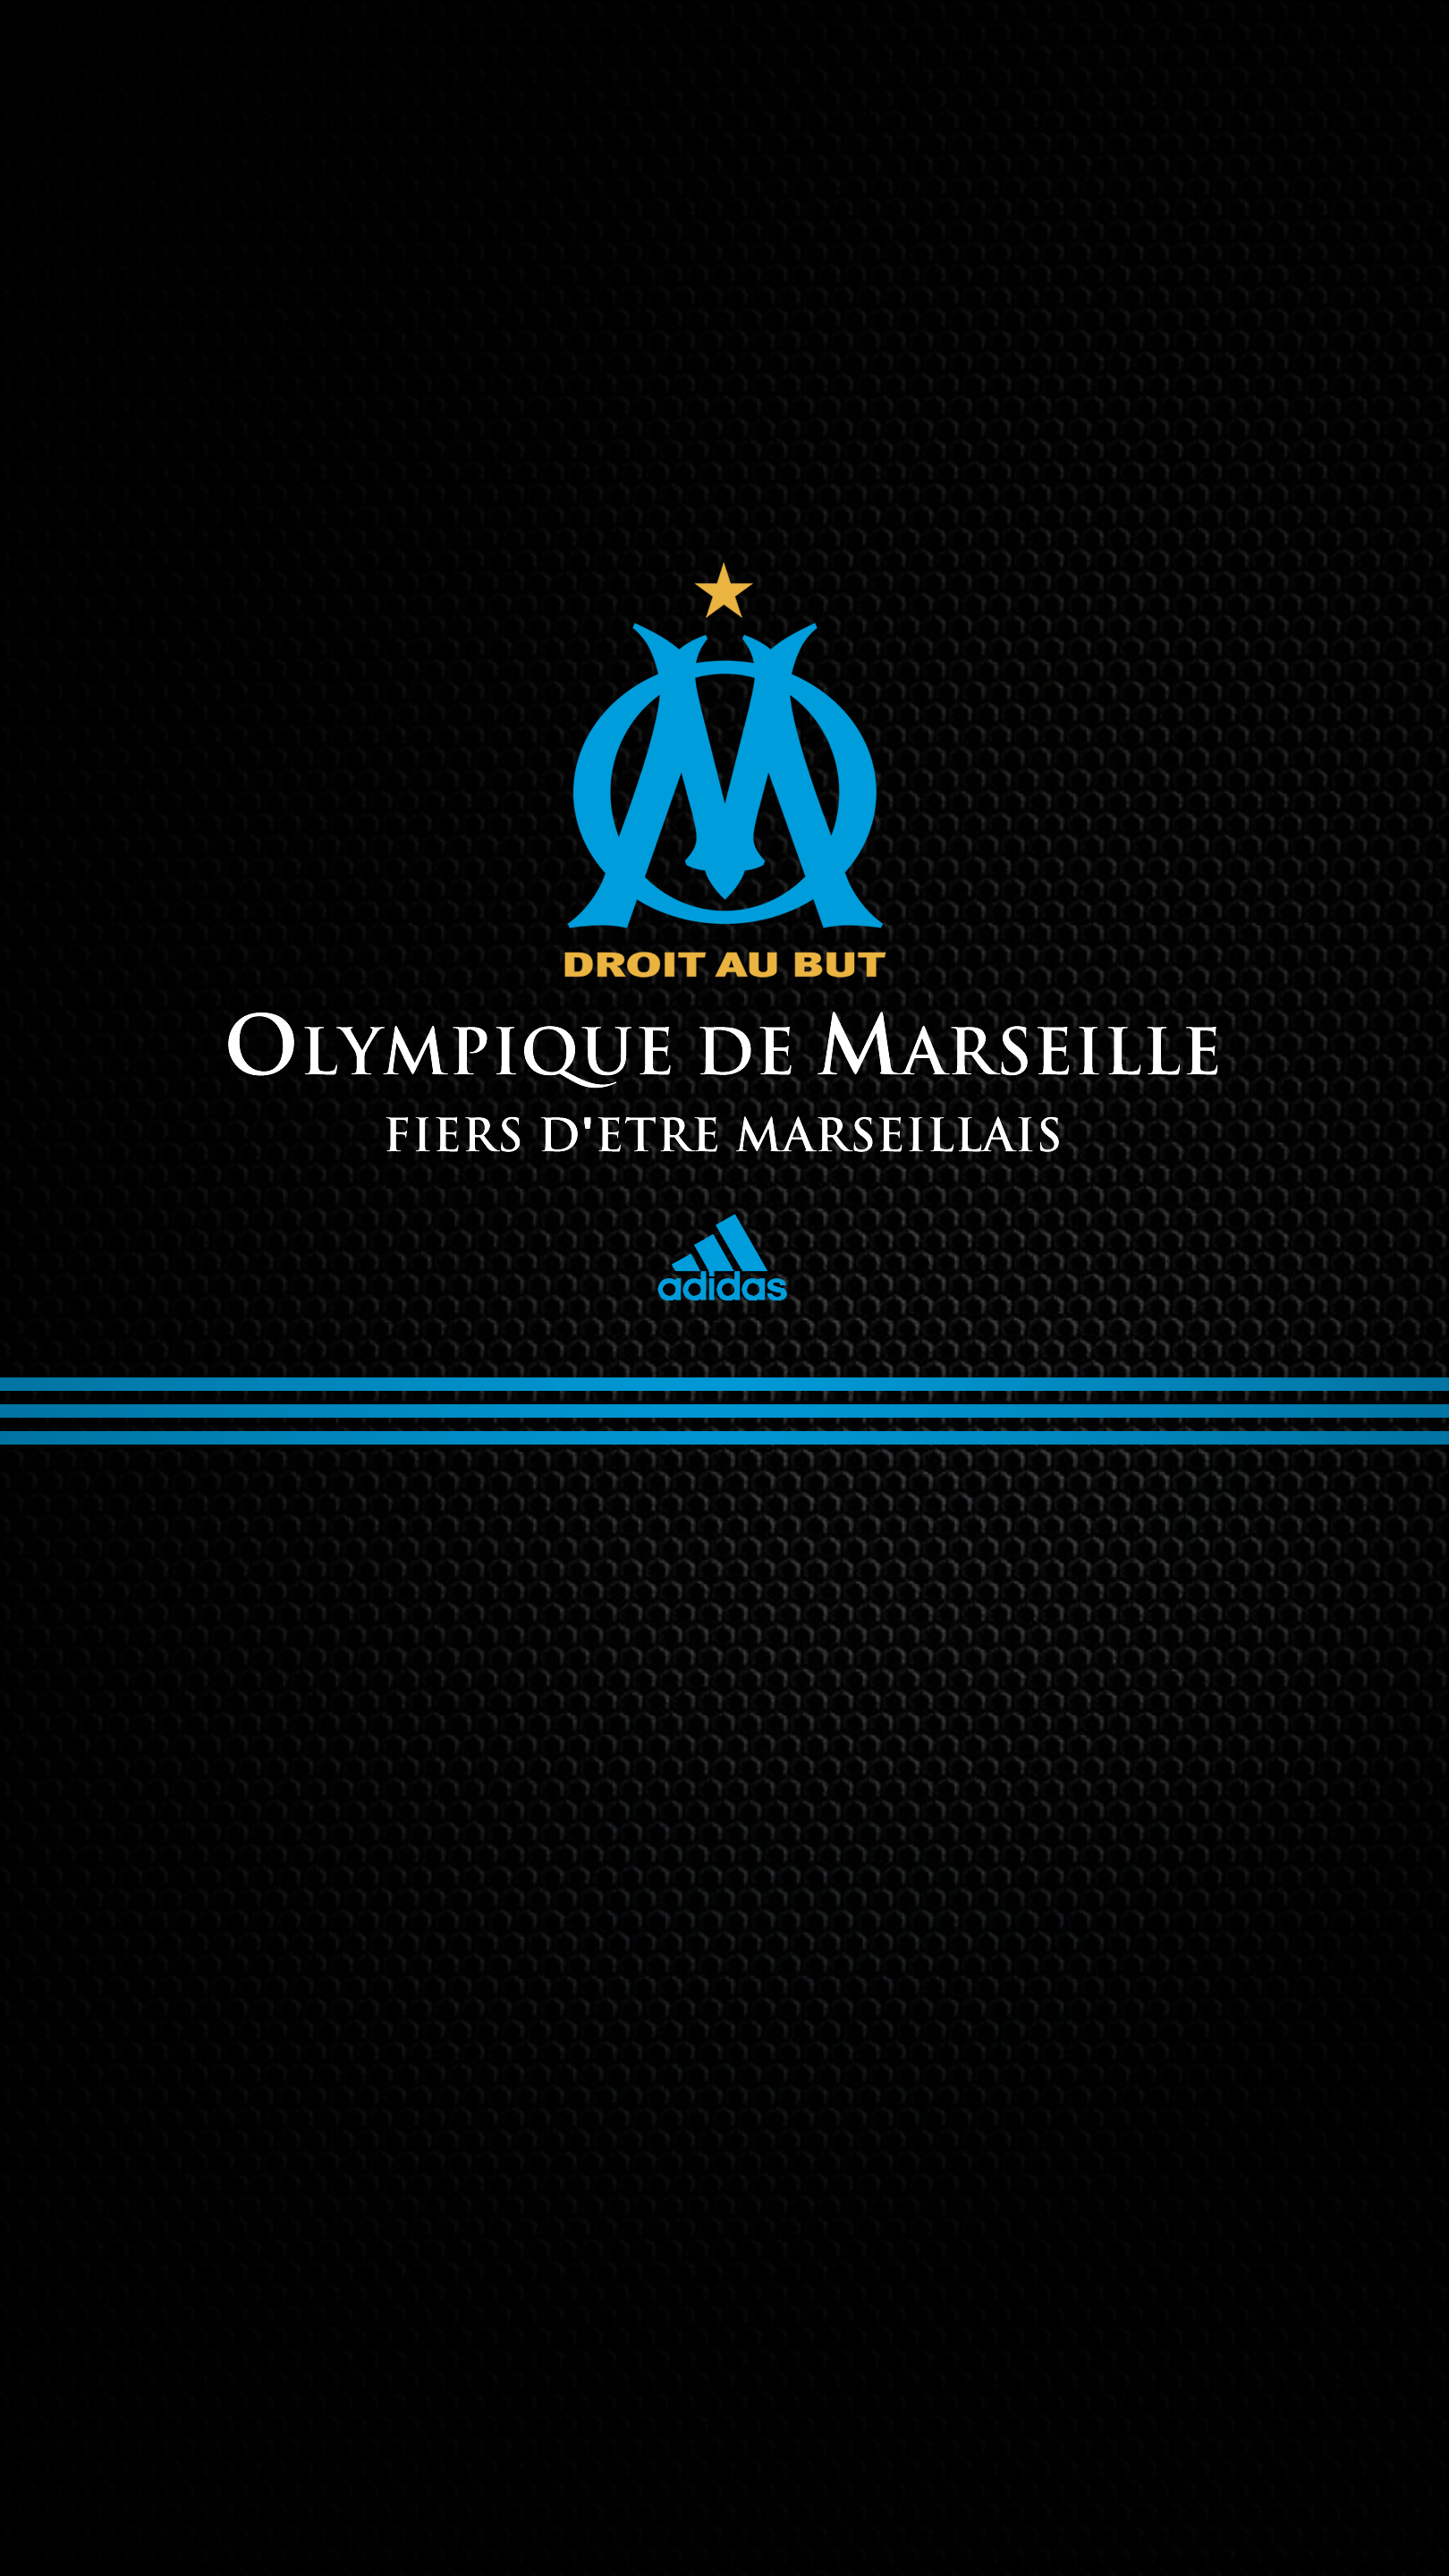 mobile olympique de marseille wallpaper full hd pictures